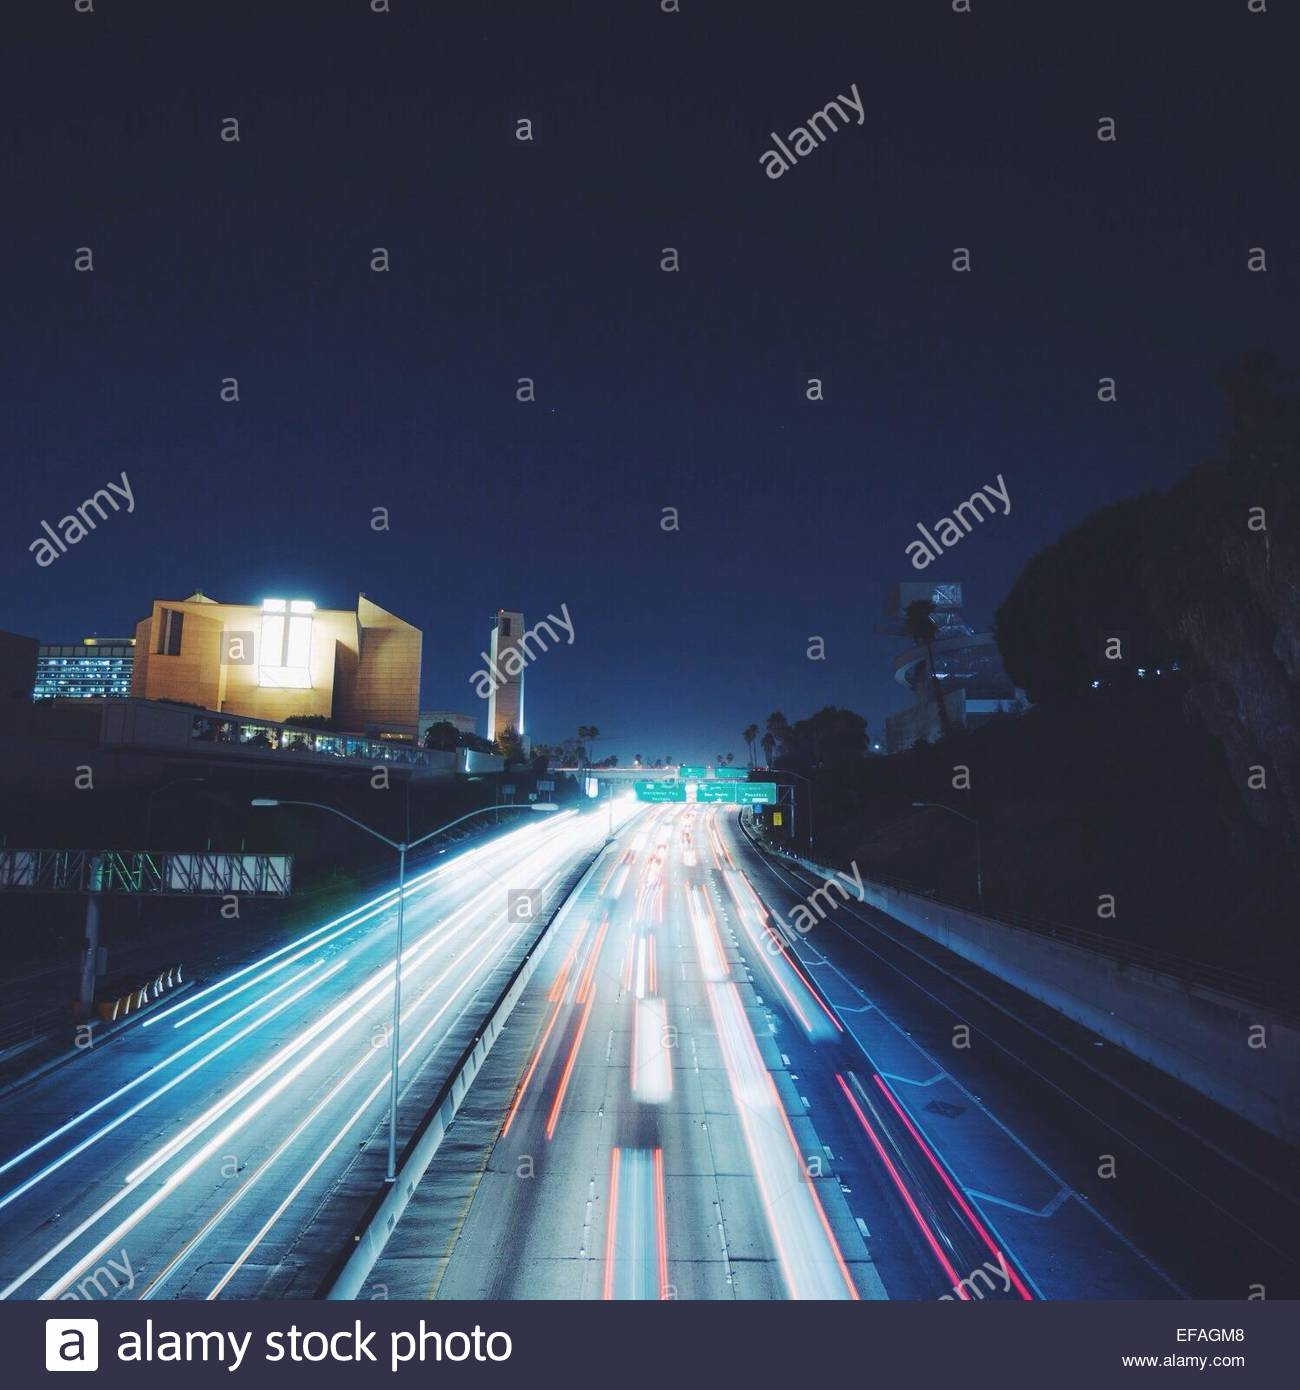 Busy highway at night - Stock Image